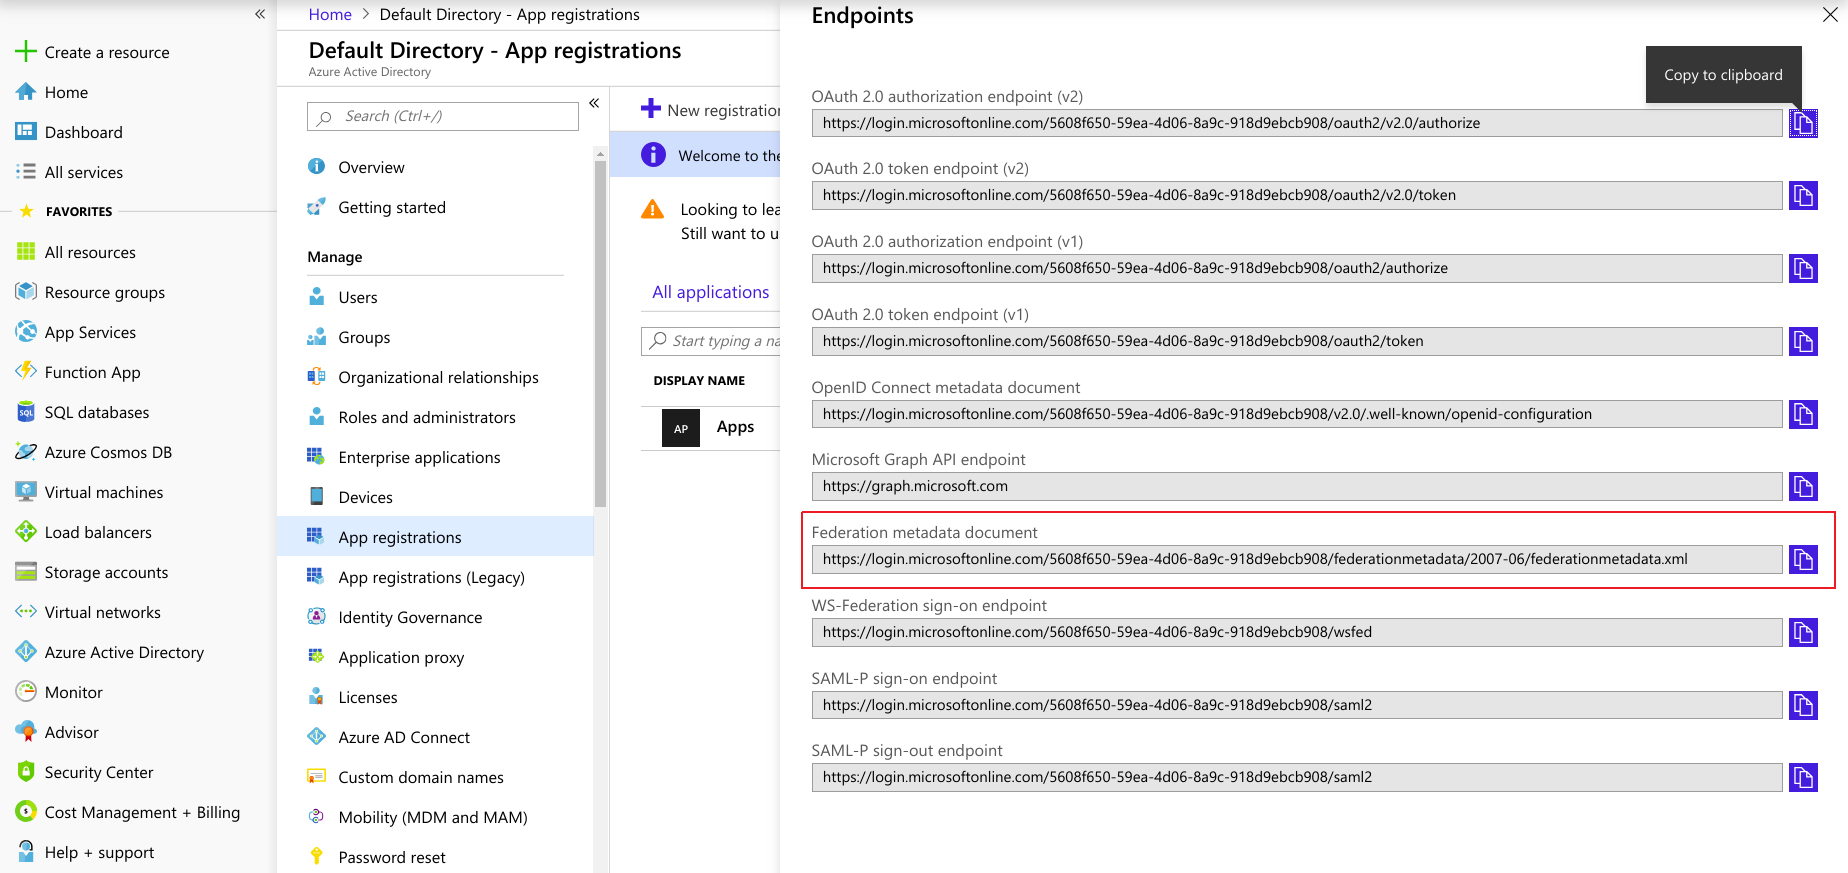 SAML Single Sign-On (SSO) using Azure AD as Identity Provider (IdP),for SAML 2.0 federation metadata